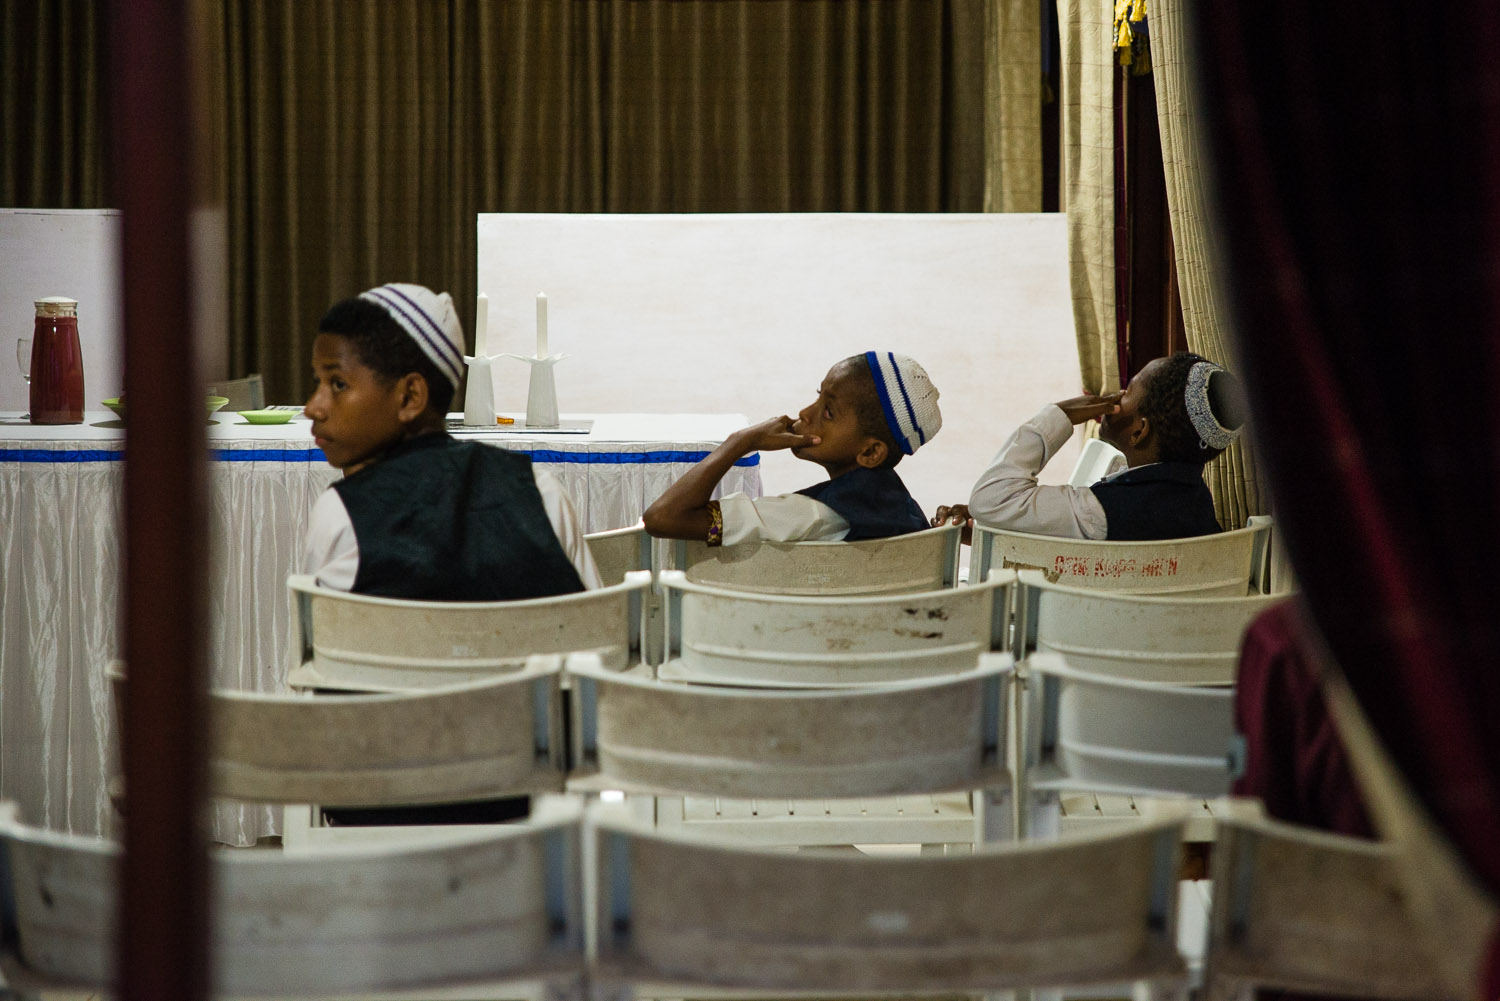 Annis, Charlie Kecil (little Charlie), and Hosea wait for Friday night Shabbat services to begin. The community wears their best clothes for Shabbat, including the children.